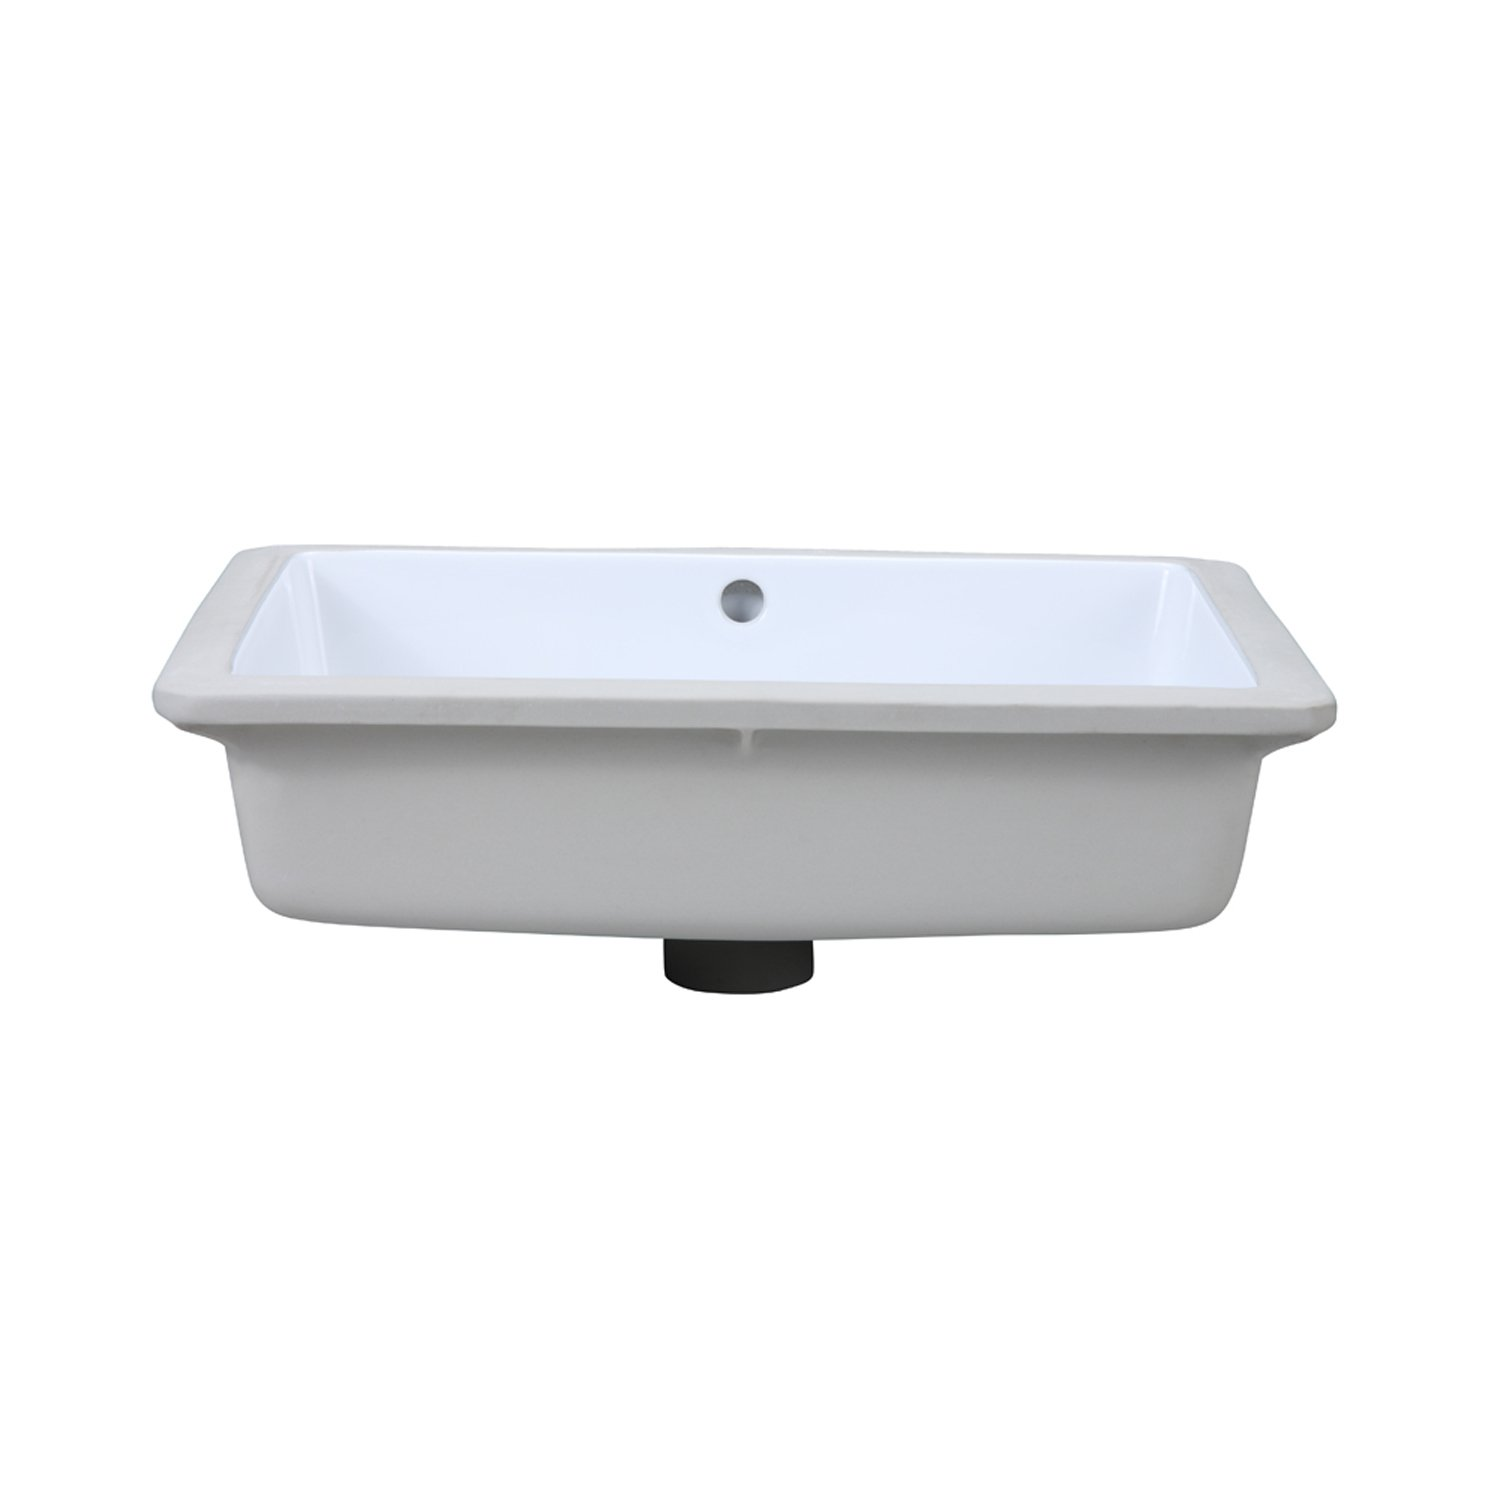 DECOLAV 1482 CWH Lilli Classically Redefined Rectangular Undermount  Lavatory Sink, White   Vessel Sinks   Amazon.com